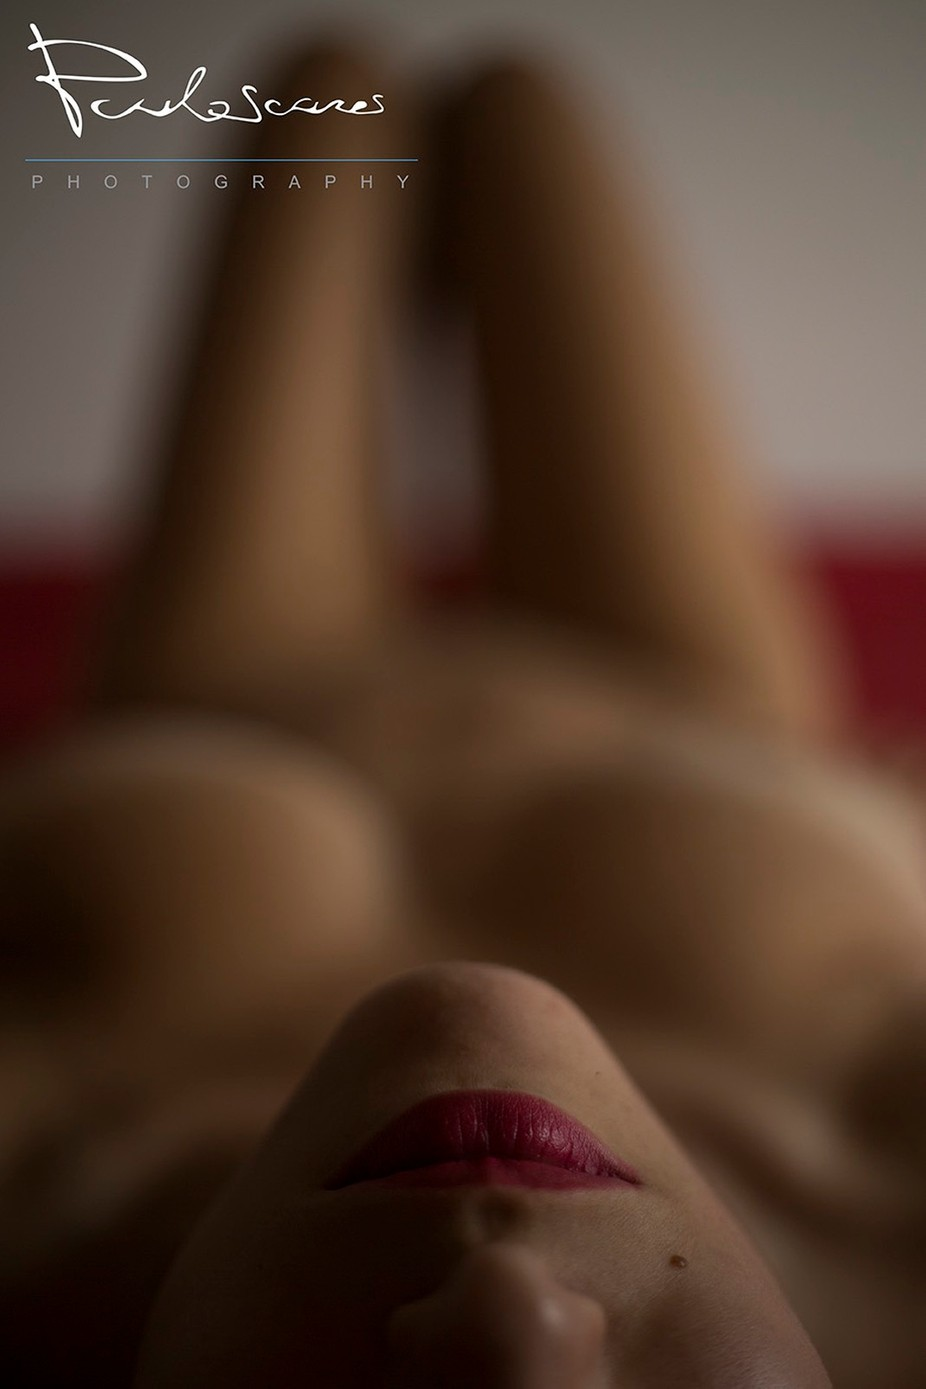 Sexy lips by paulosoares-photography - Sensual And Artistic Photo Contest